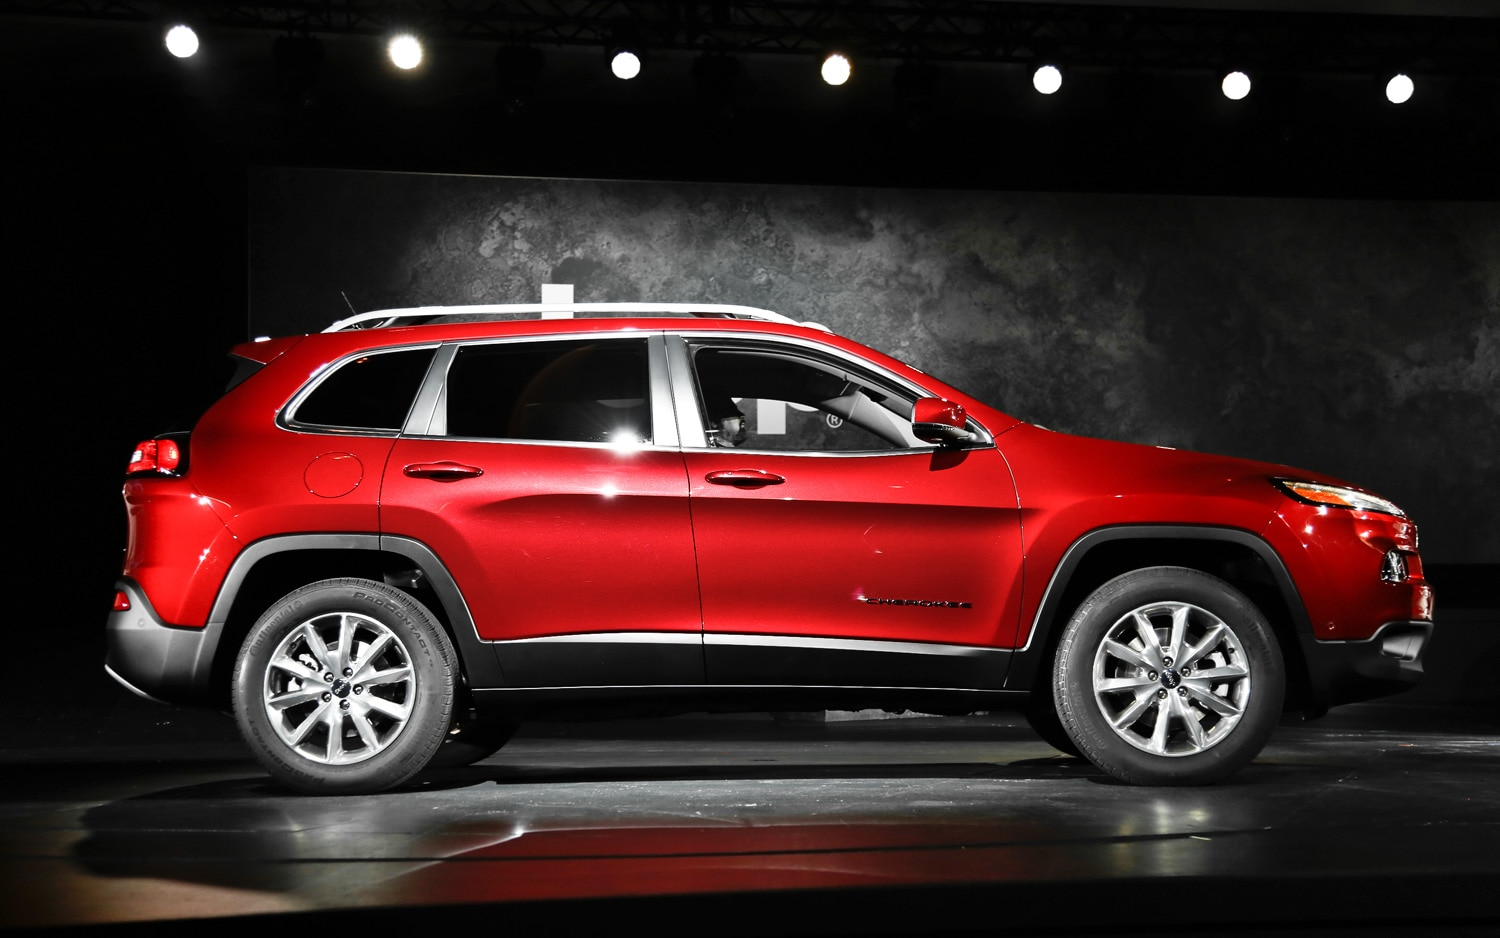 2014 Jeep Cherokee Limited side 2